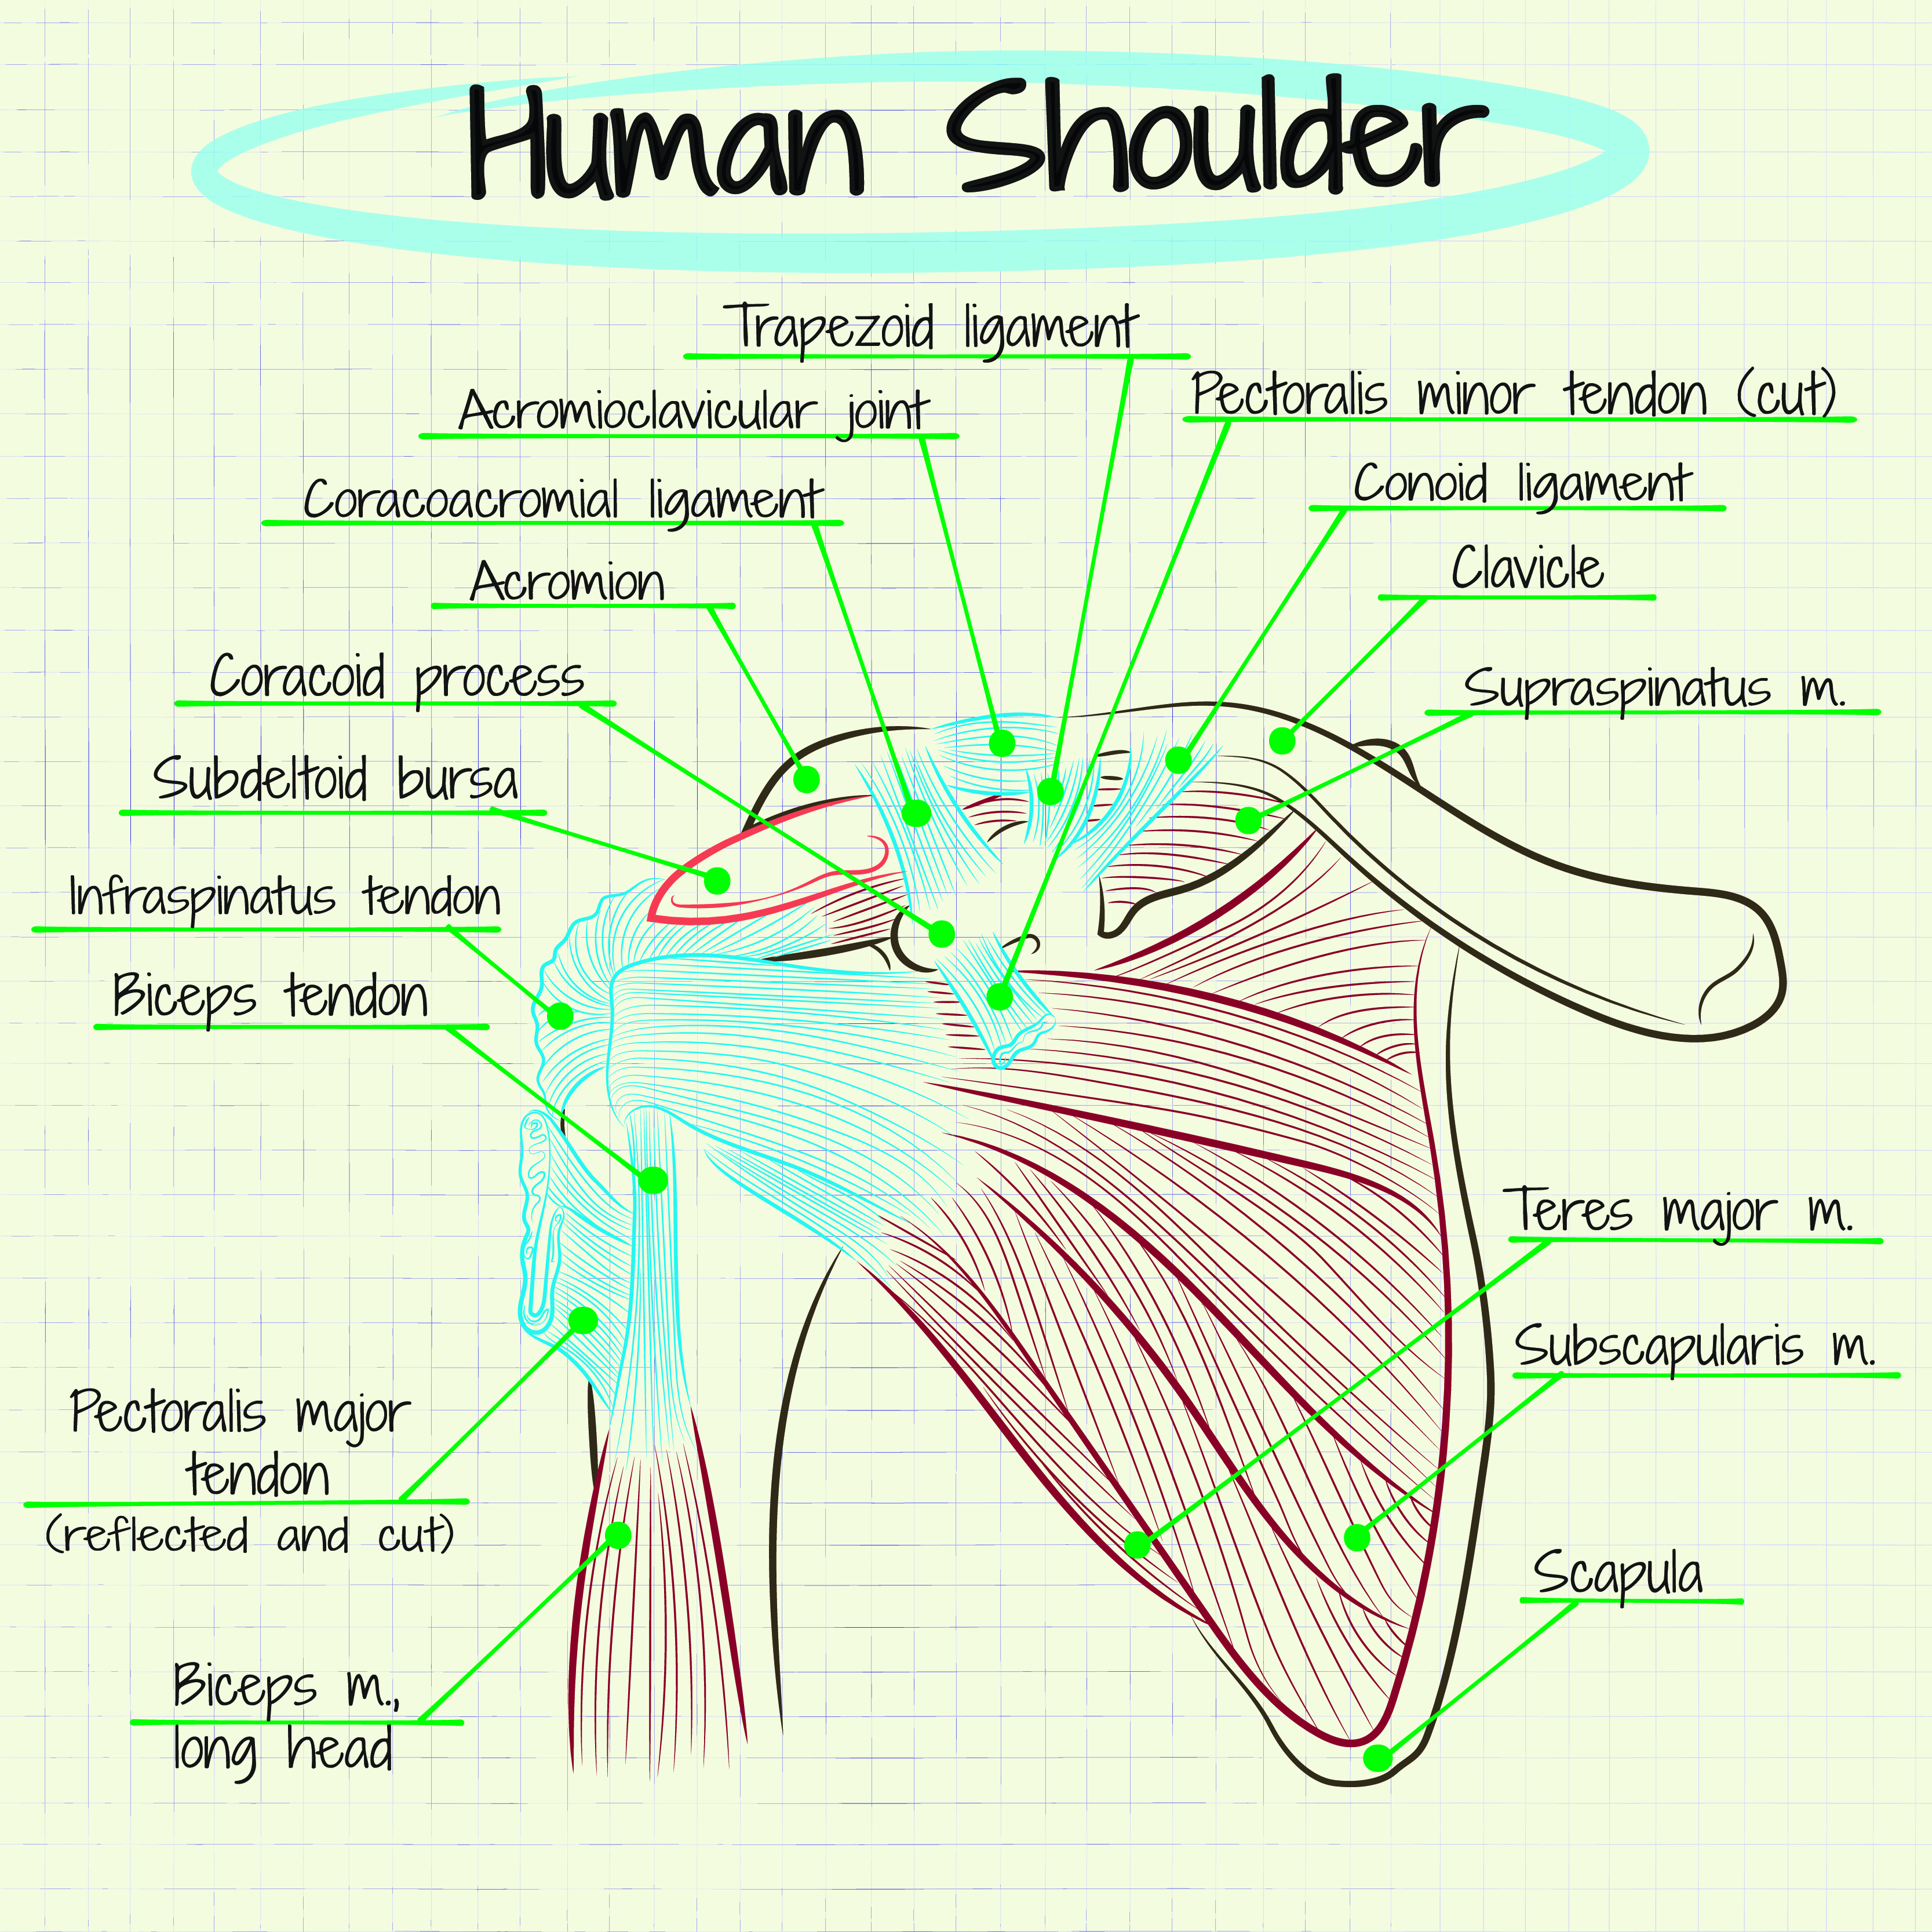 detailed anatomical view of the shoulder